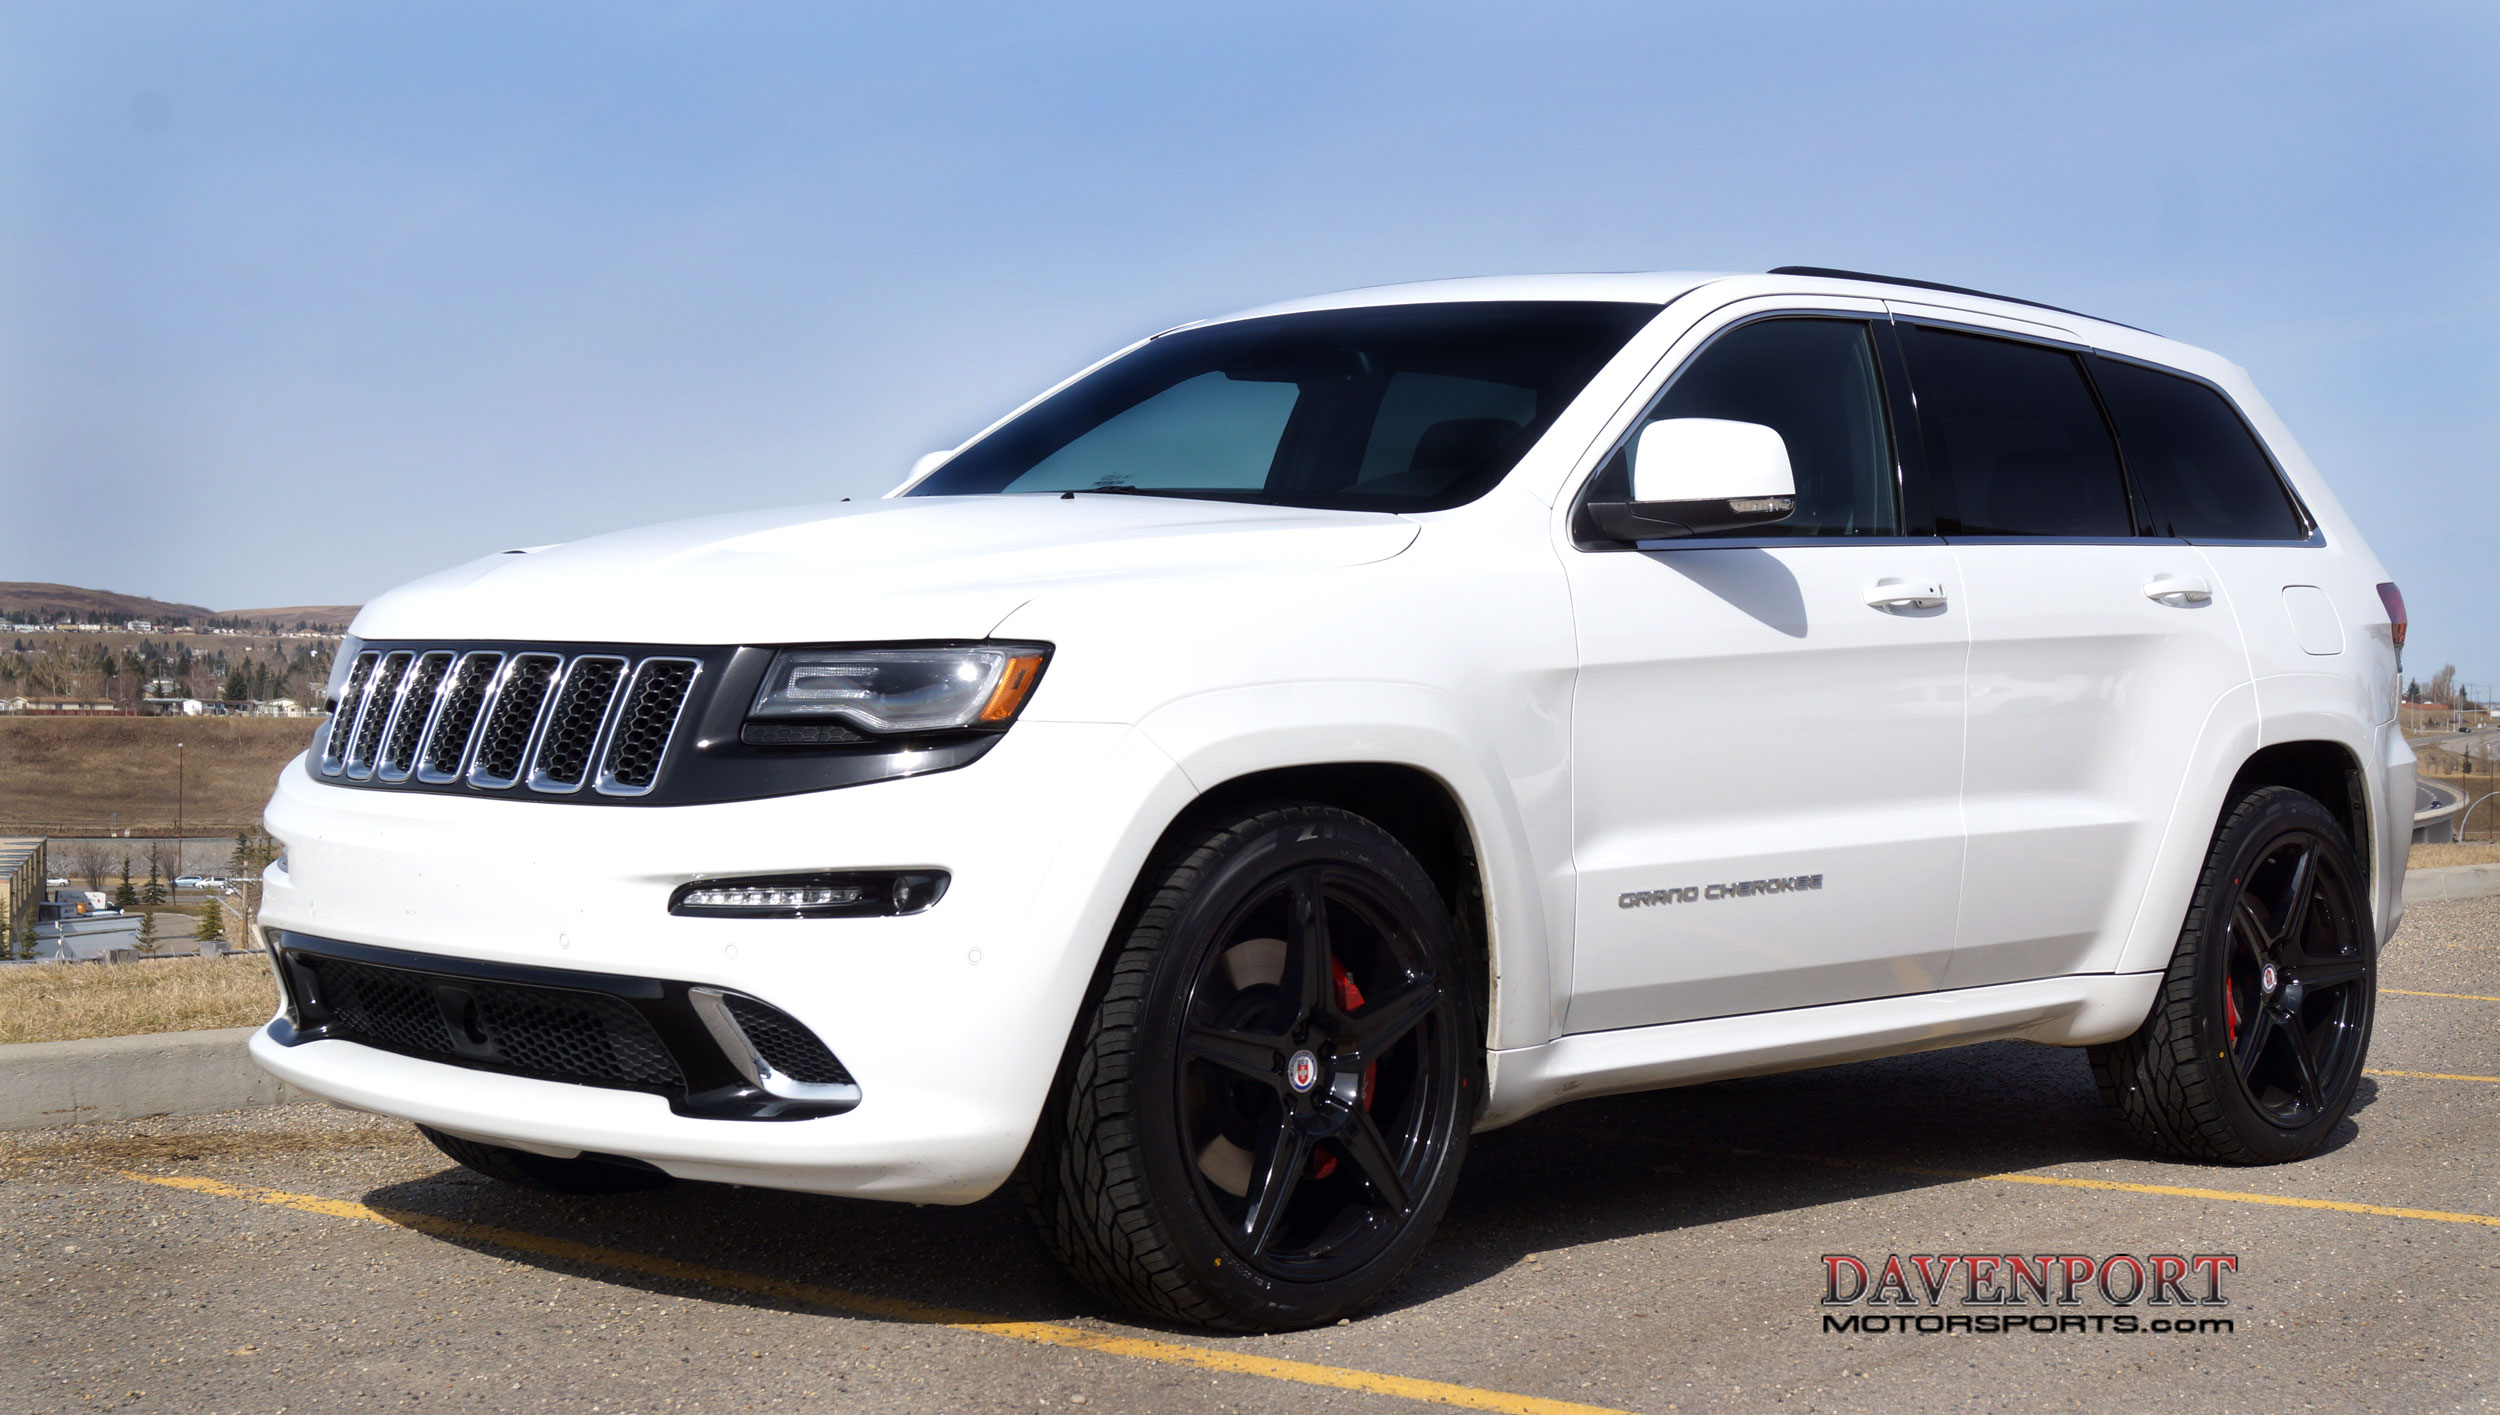 Jeep Grand Cherokee Srt8 Archives Davenport Motorsports